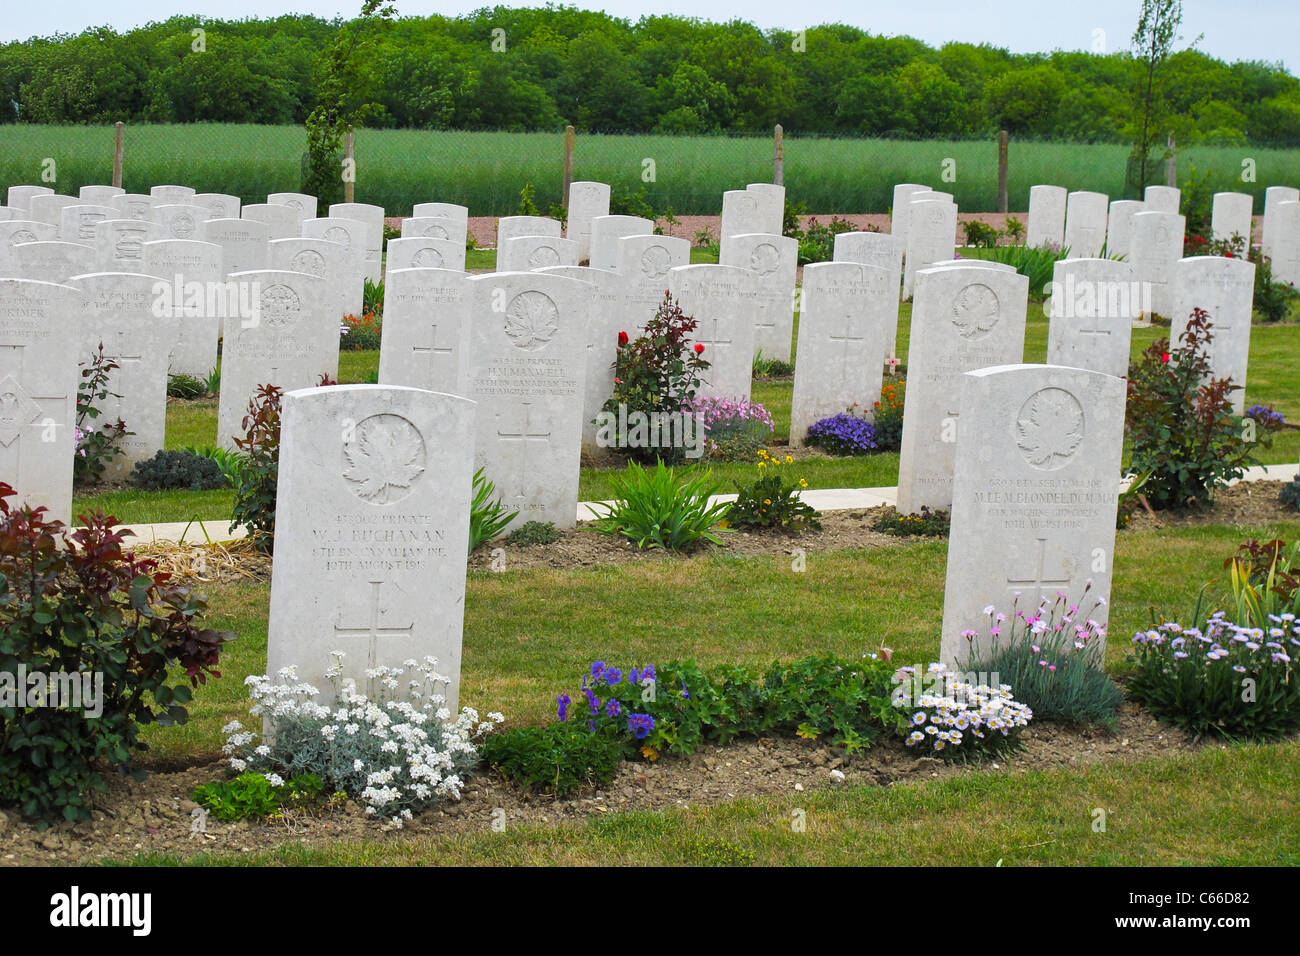 Graves in the Australian National Memorial in Northern France - Stock Image